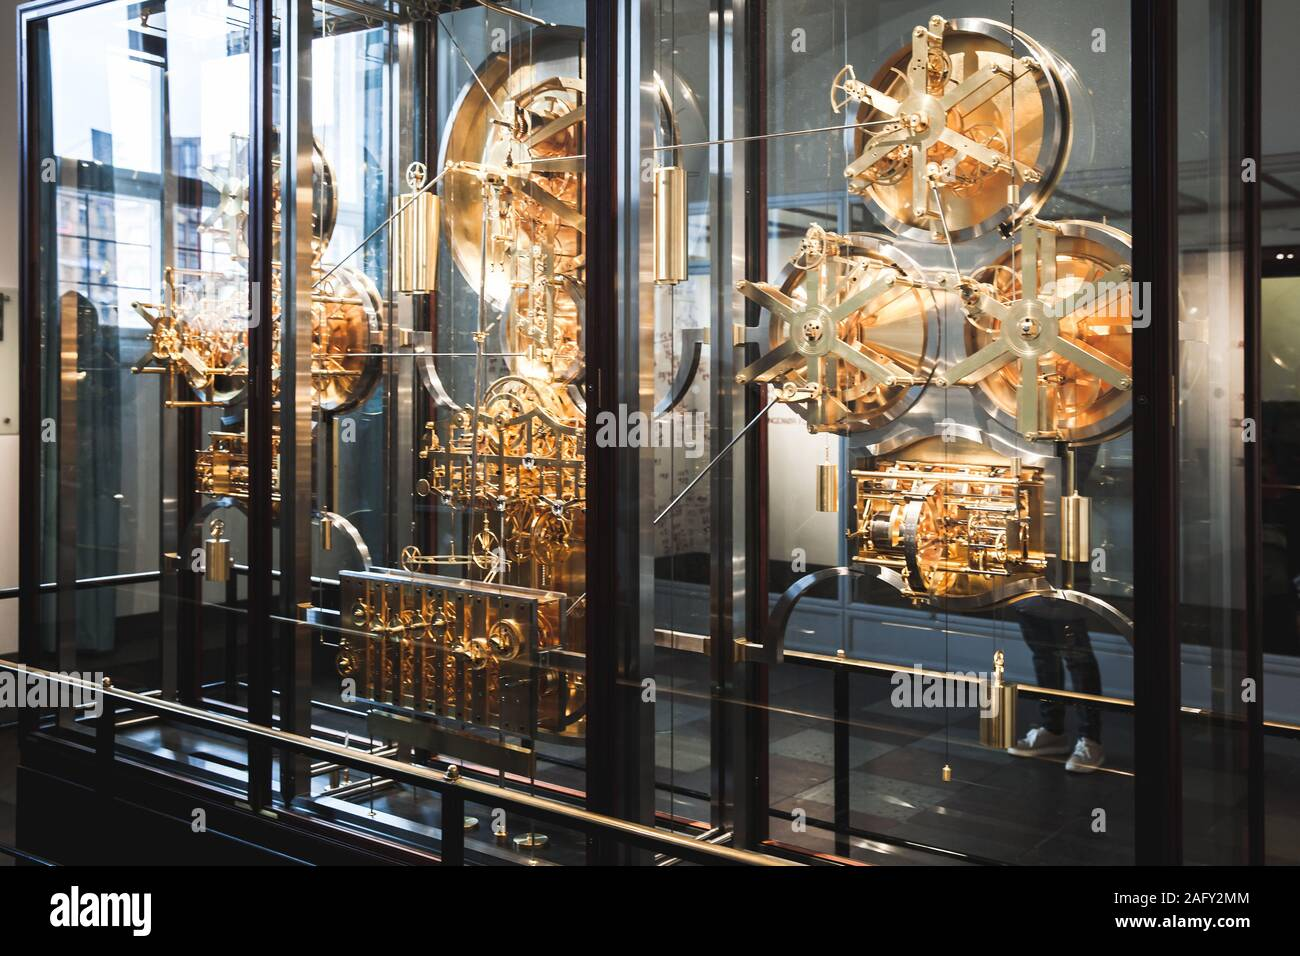 Copenhagen, Denmark - December 9, 2017: Jens Olsen World Clock, it is an advanced astronomical clock which is displayed in Copenhagen City Hall Stock Photo